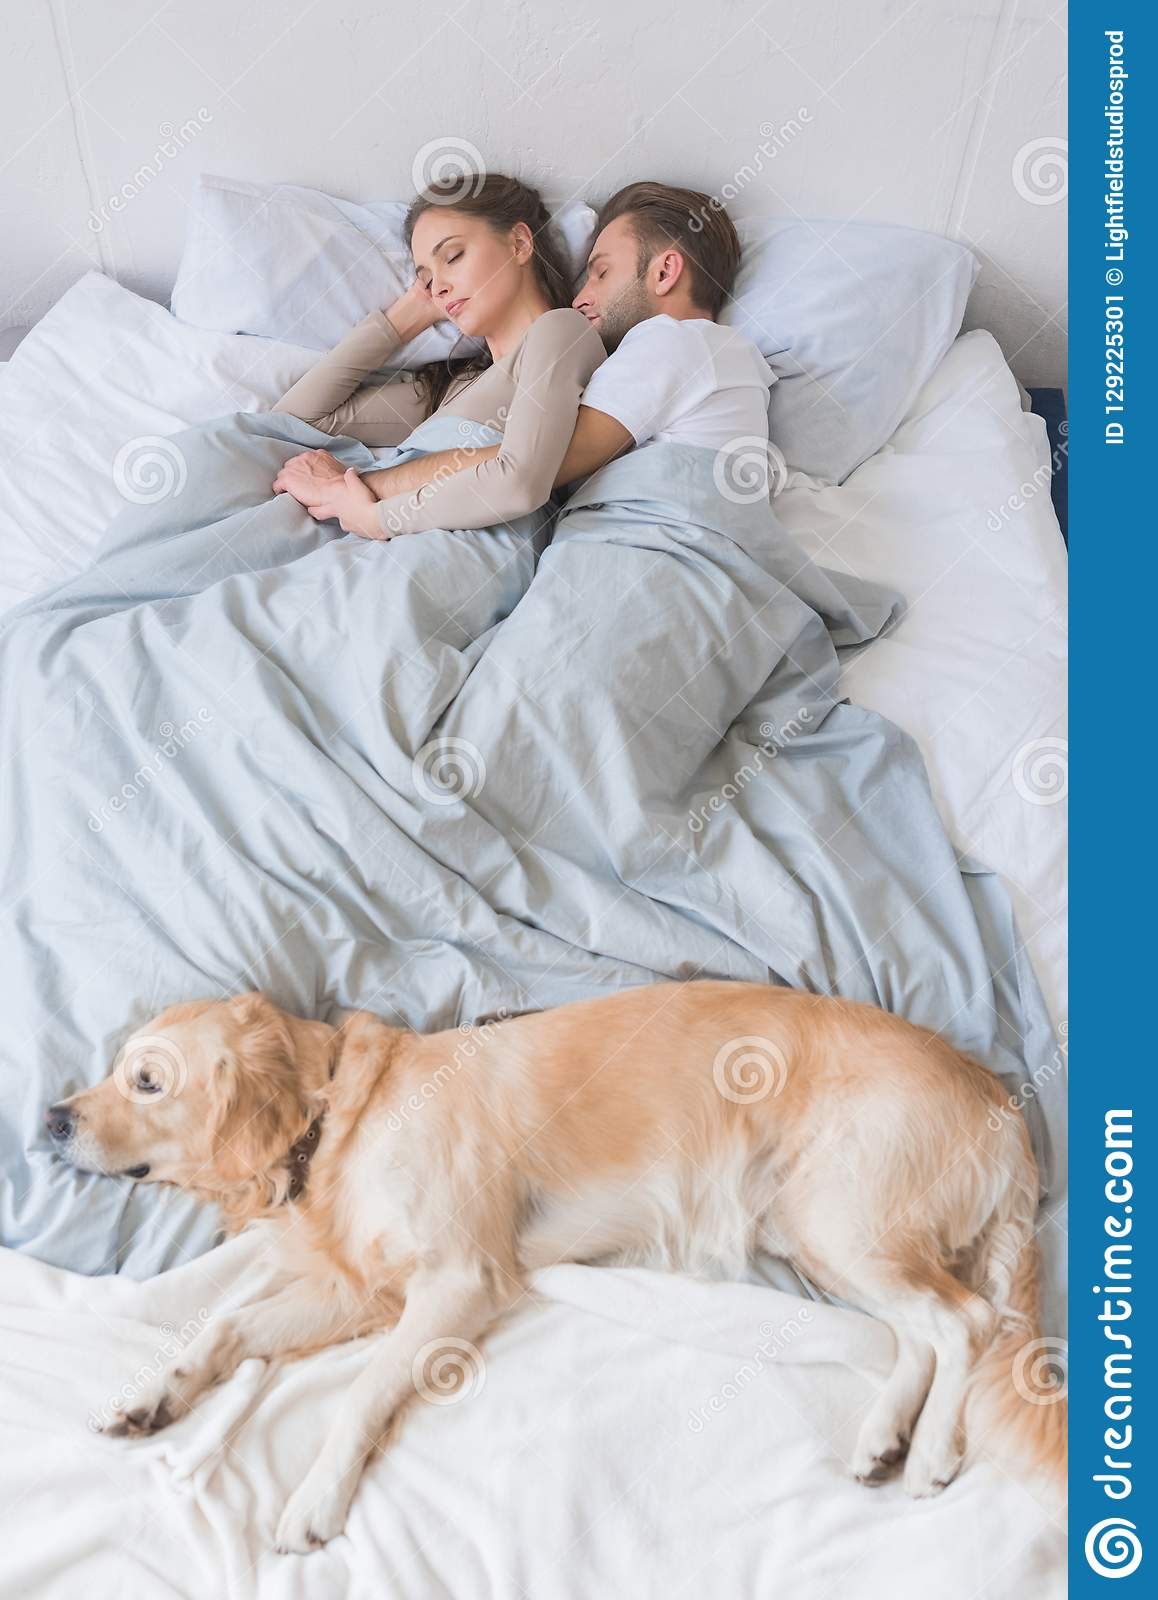 Dog Sleeping On Bed With Couple Stock Image Image Of Hugging